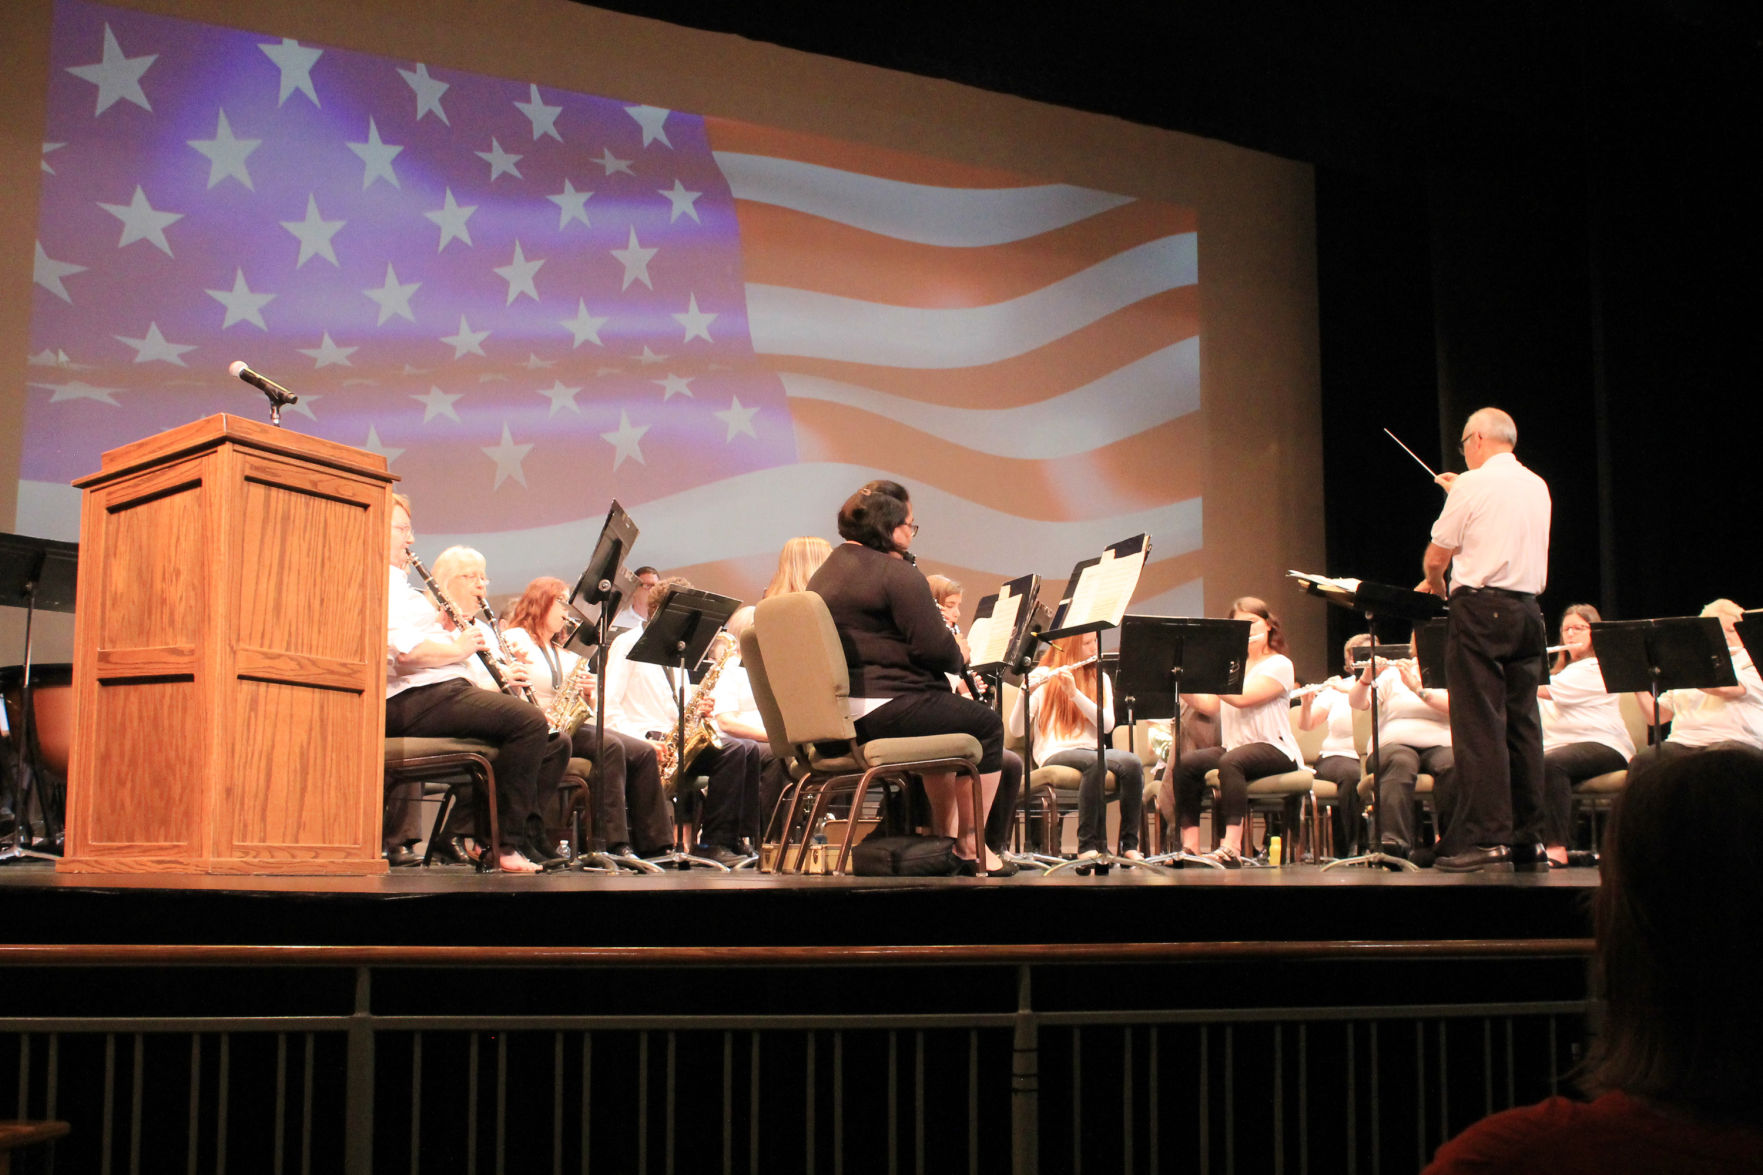 Ceremonies remind locals of Memorial Day's purpose